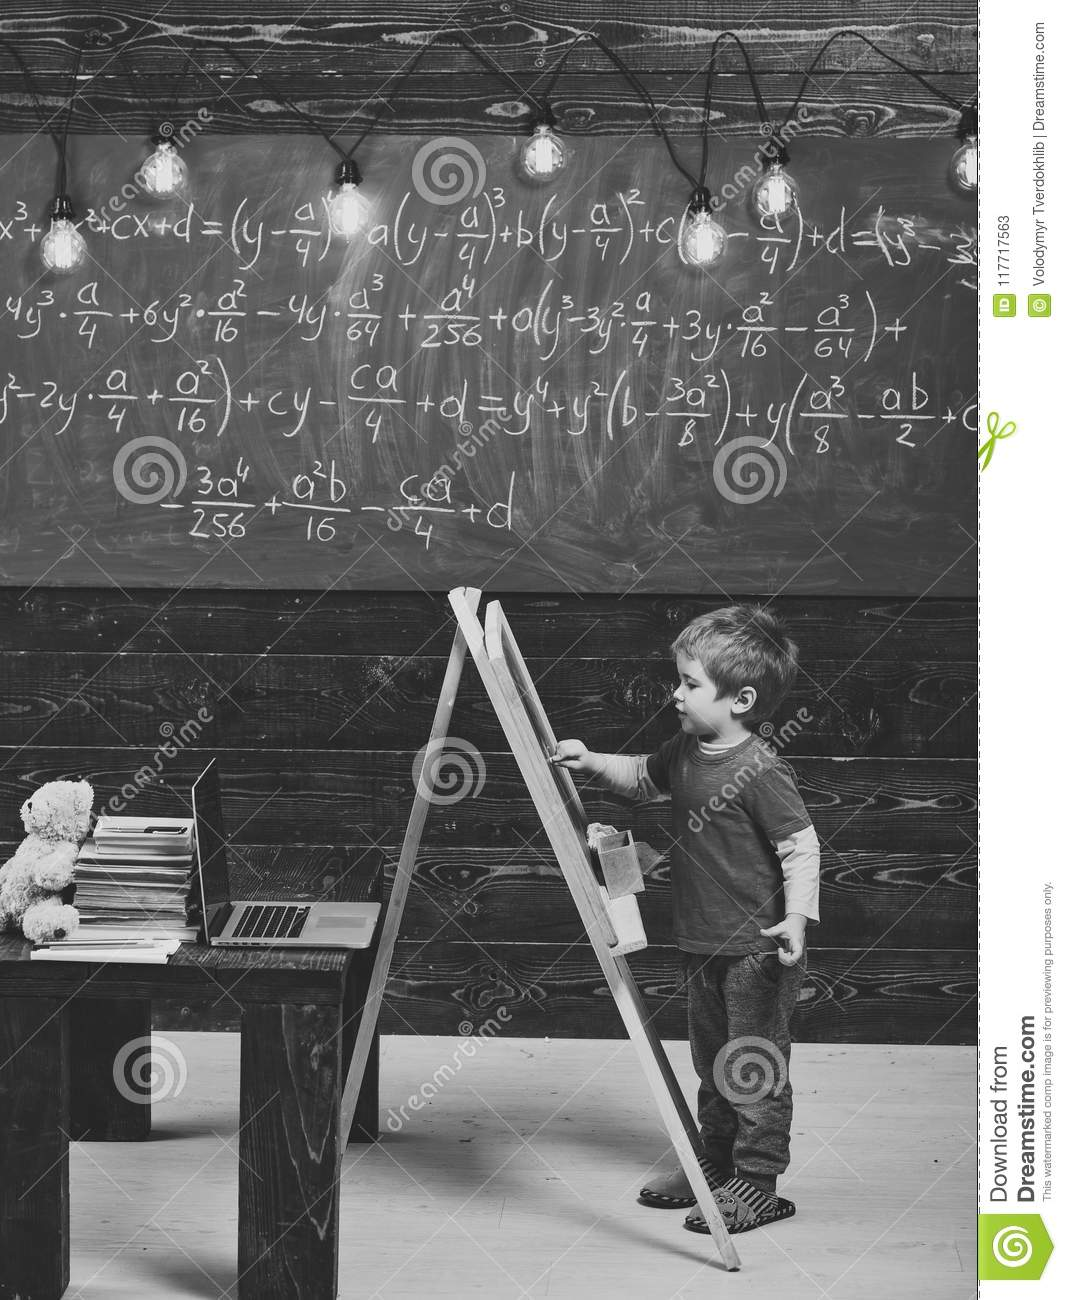 Happy kid having fun. Little boy writing on chalkboard. Side view kid in front of green board with math equation. Smart